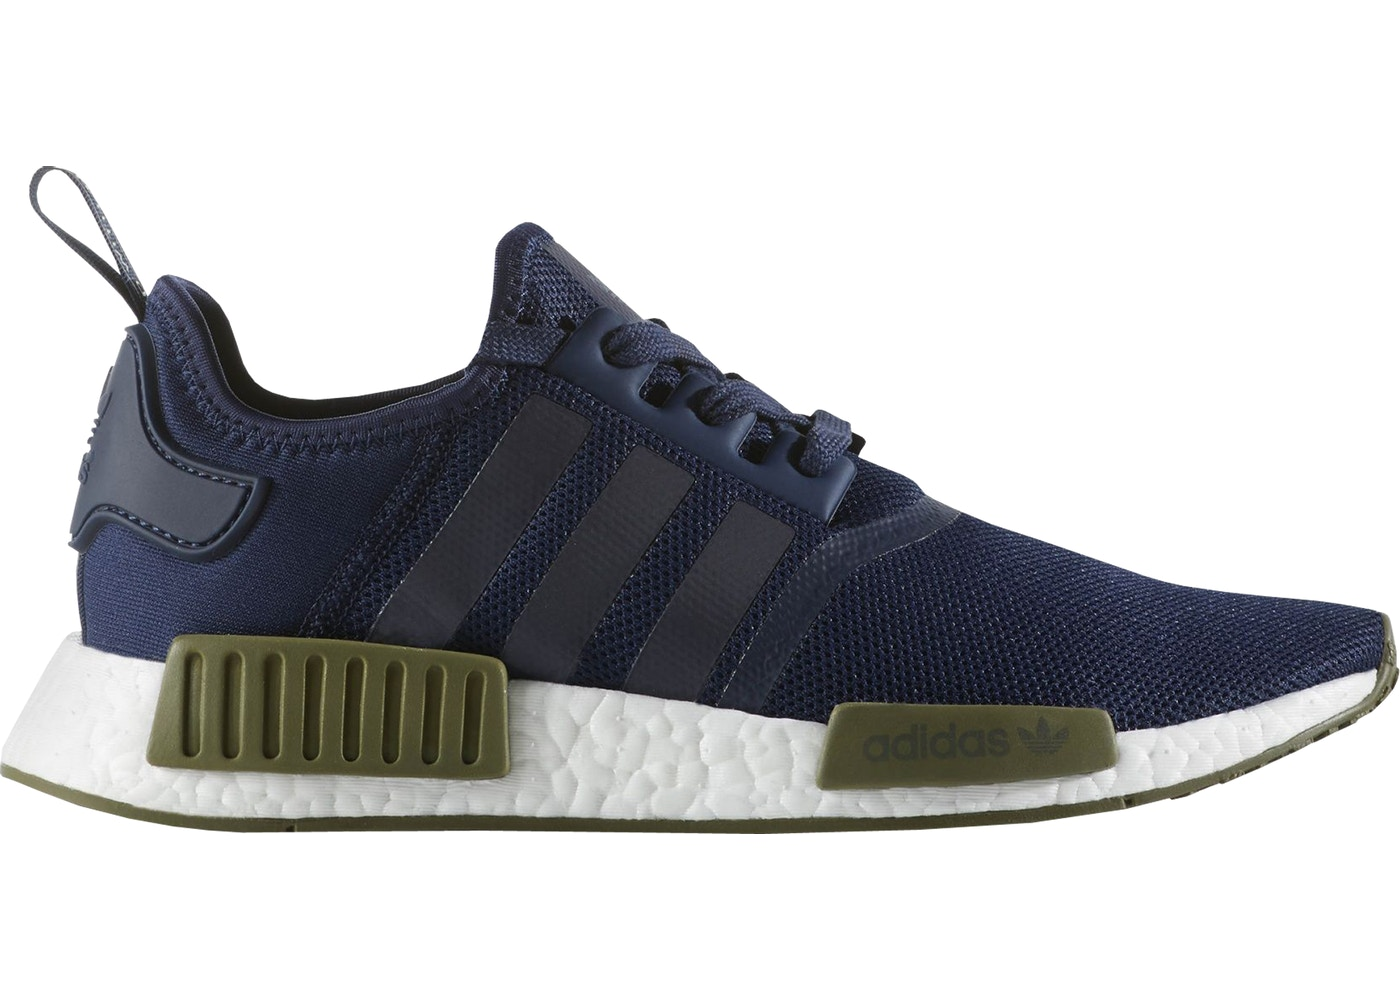 online store 7fb7a a806b adidas NMD R1 Collegiate Navy Olive Cargo - AC7065